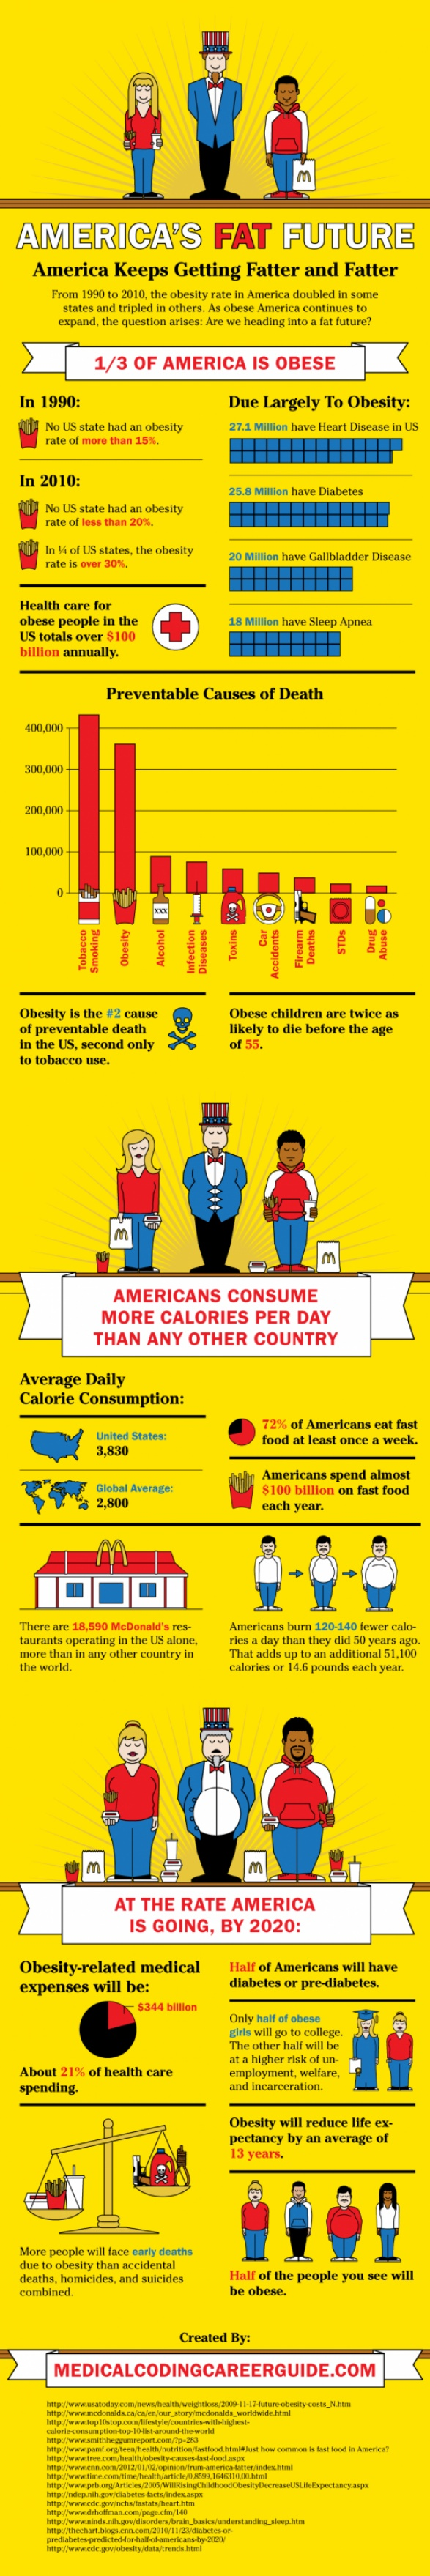 best big life obesity in america images info  america s fat future america keeps getting fatter and fatter are obese and are overweight